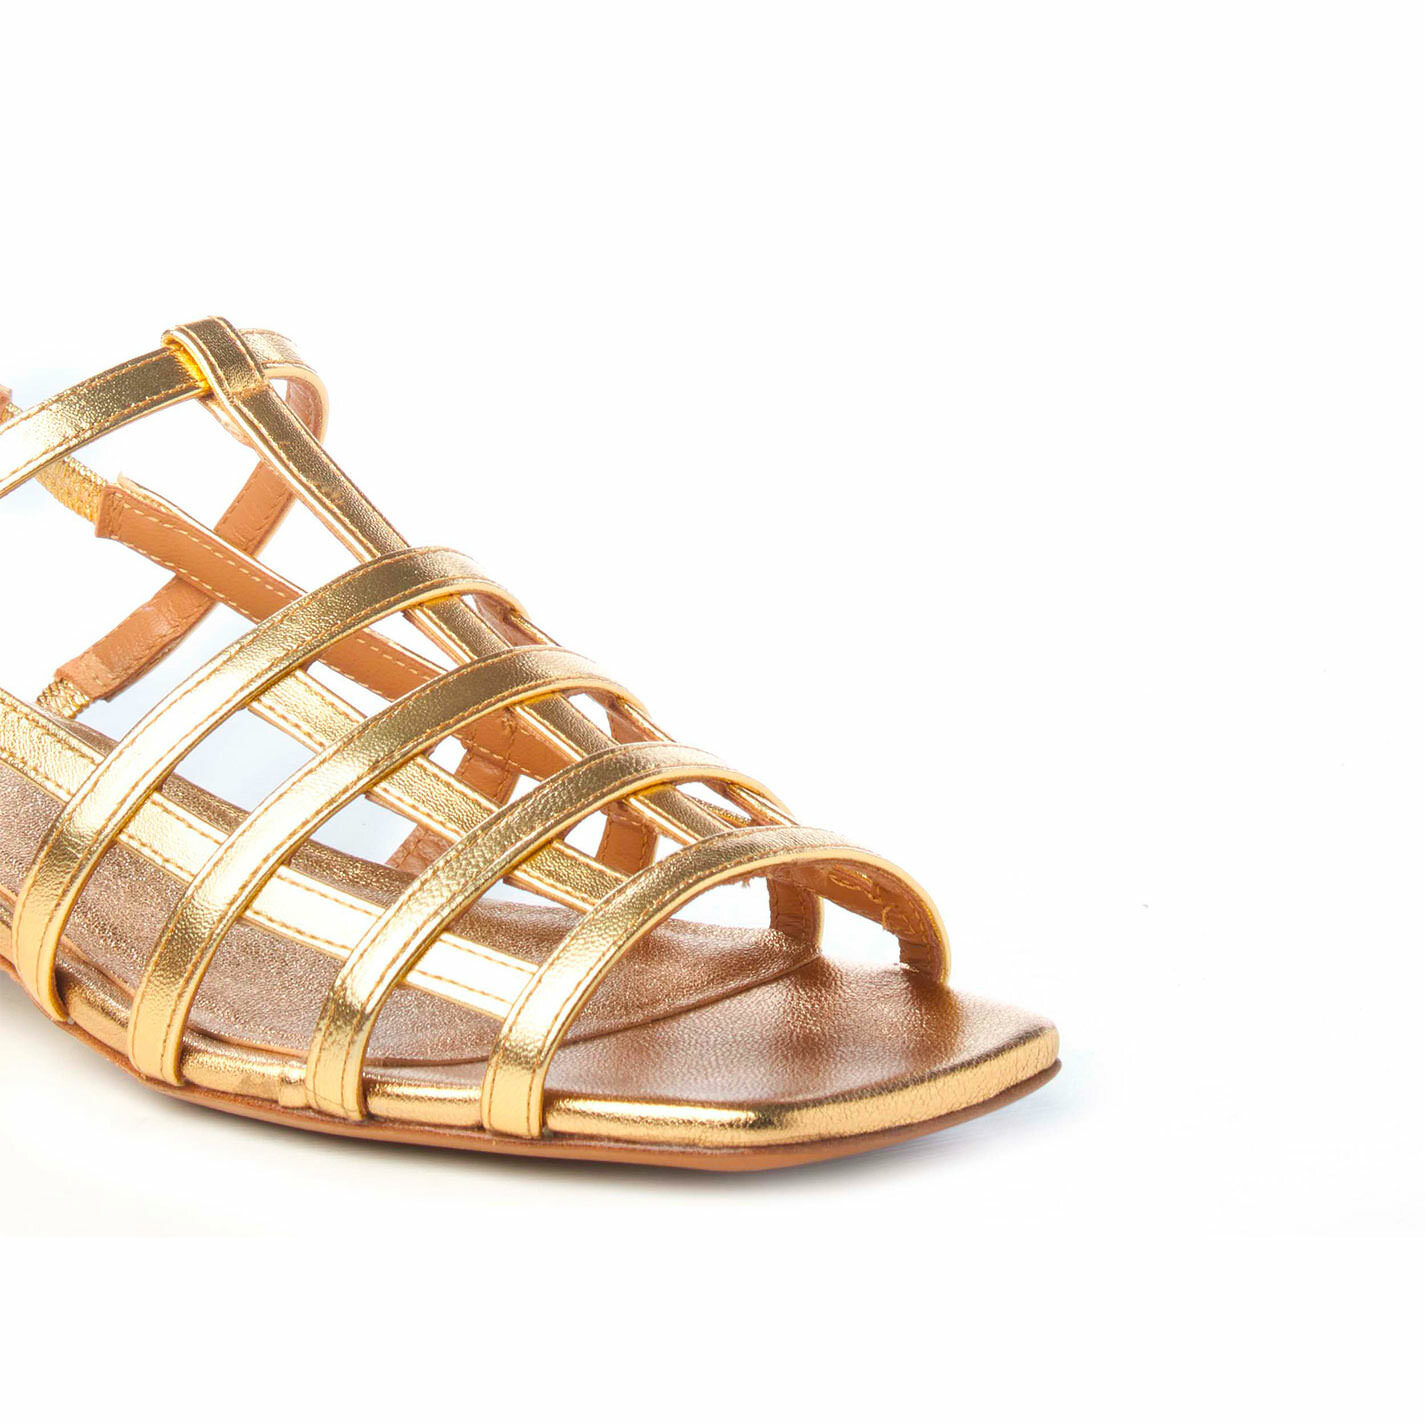 Flat cage sandals in laminated golden nappa leather